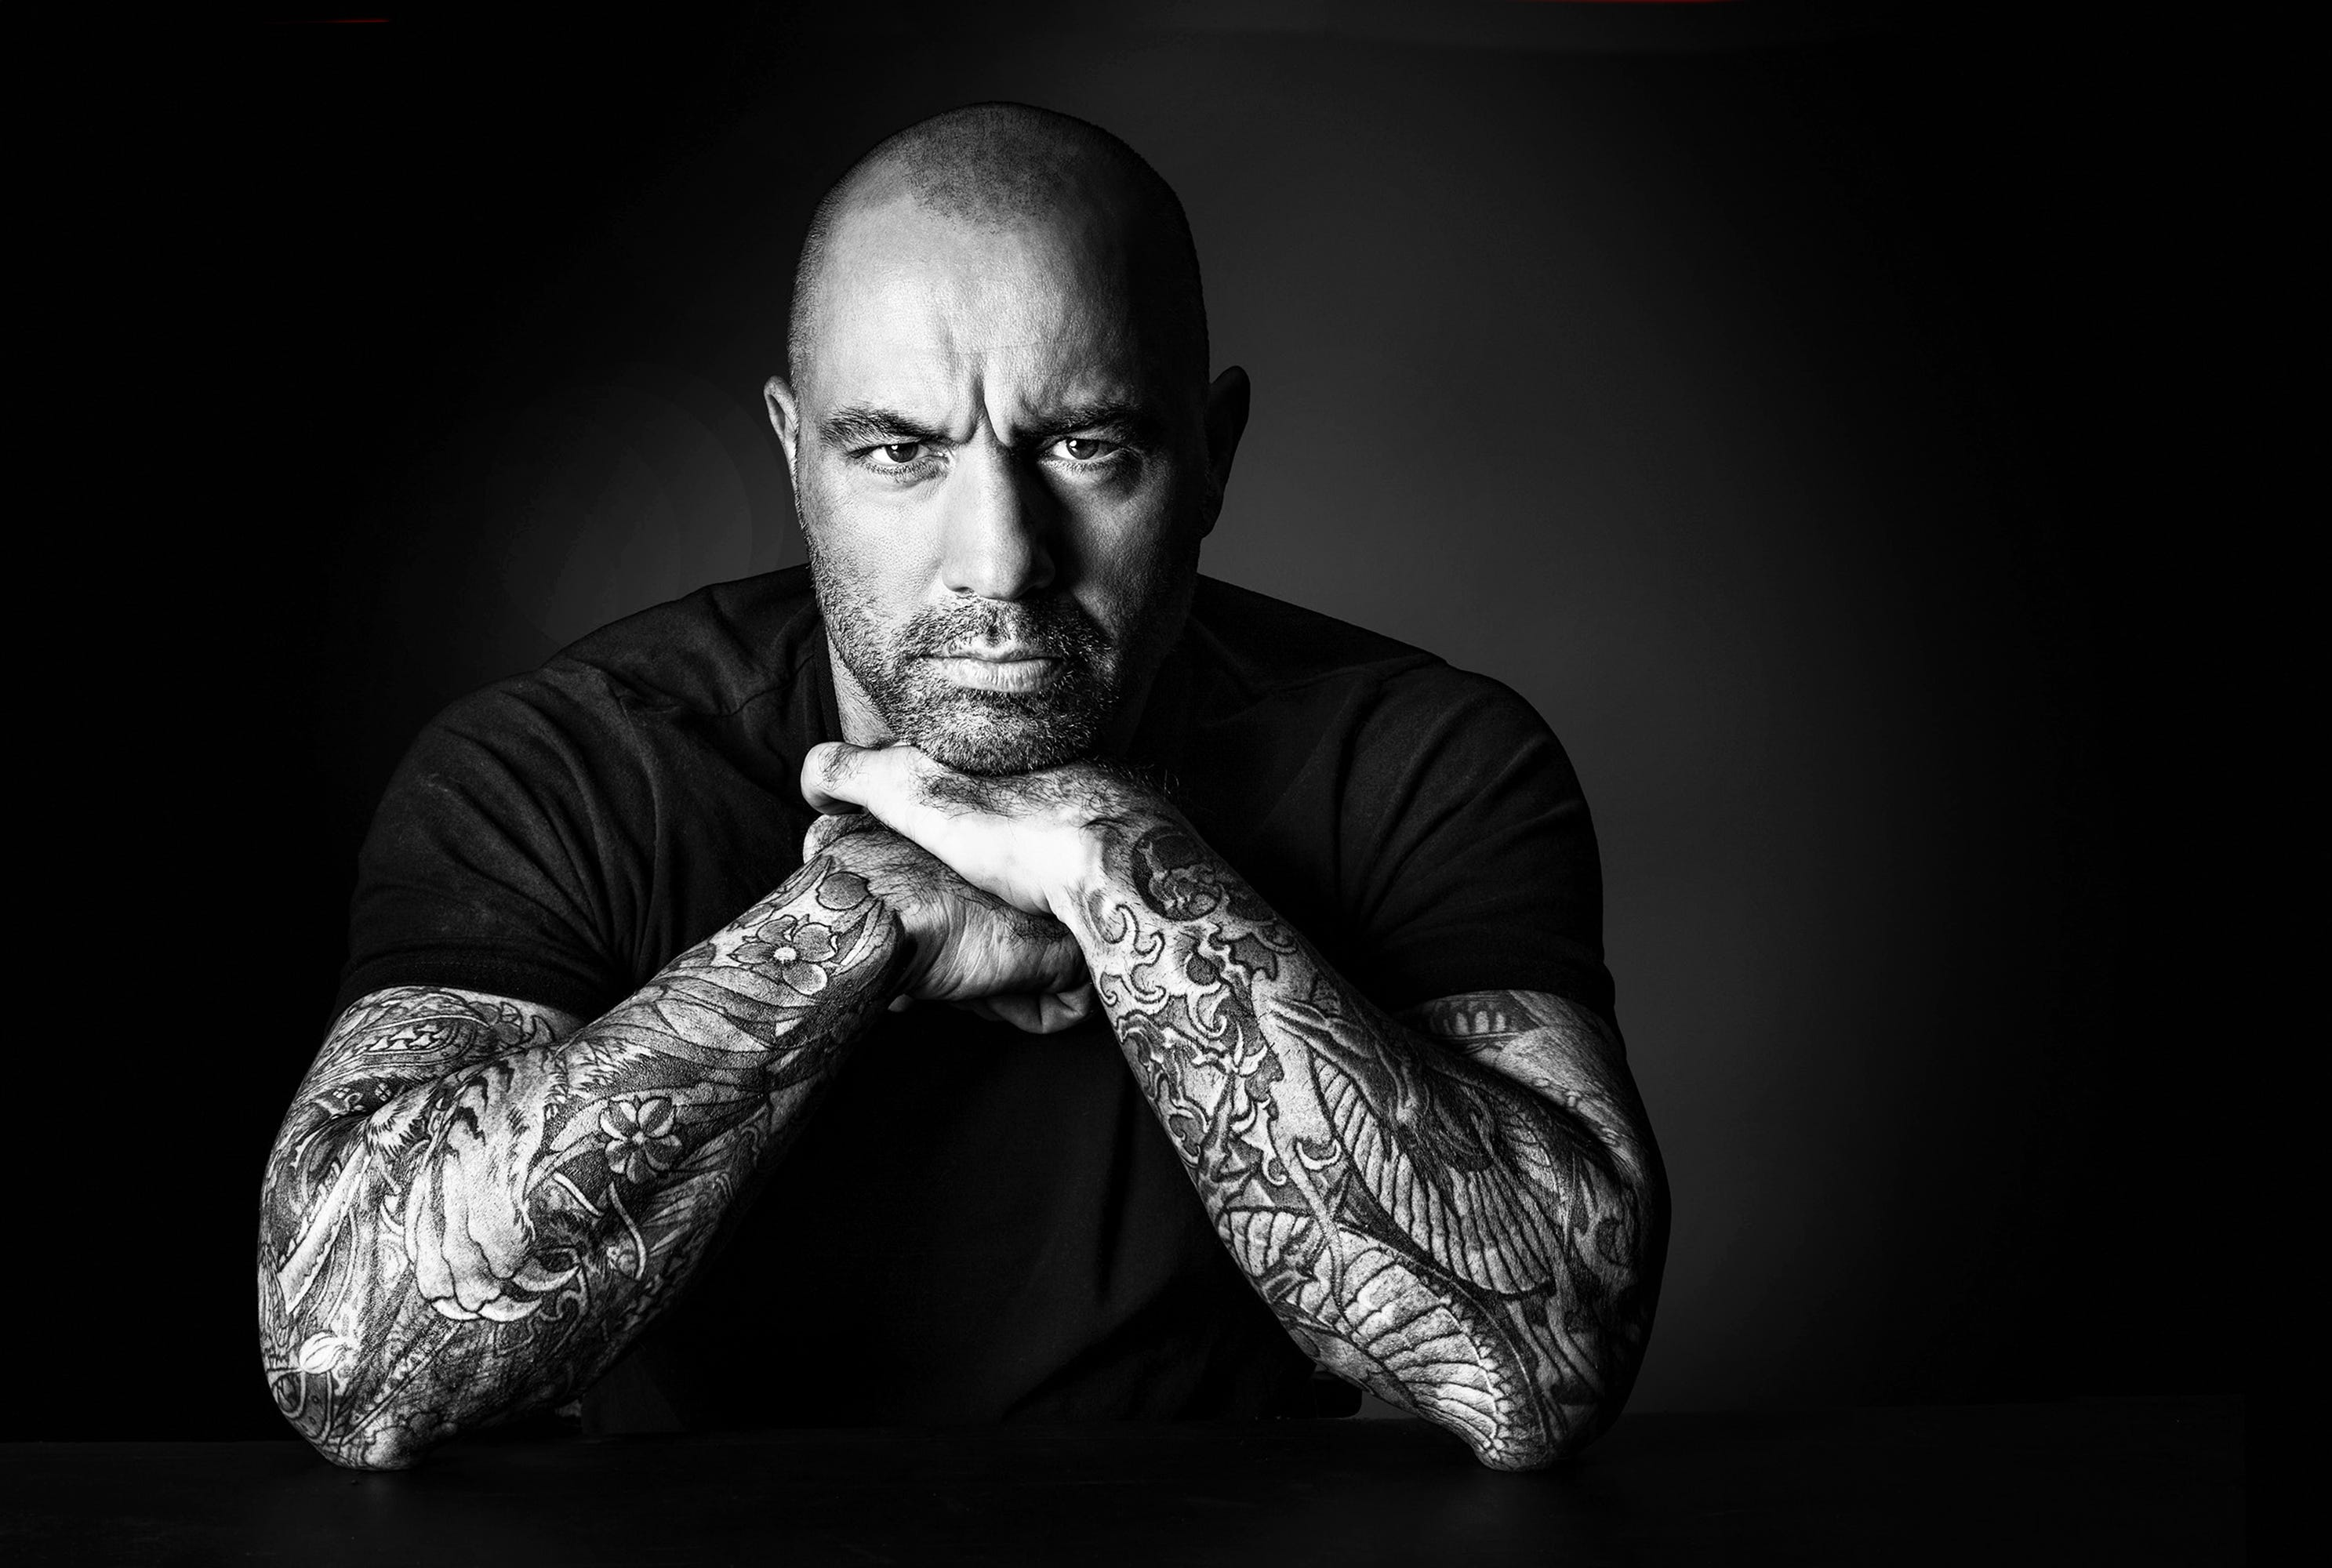 11/18: Joe Rogan | As a standup comedian for more than